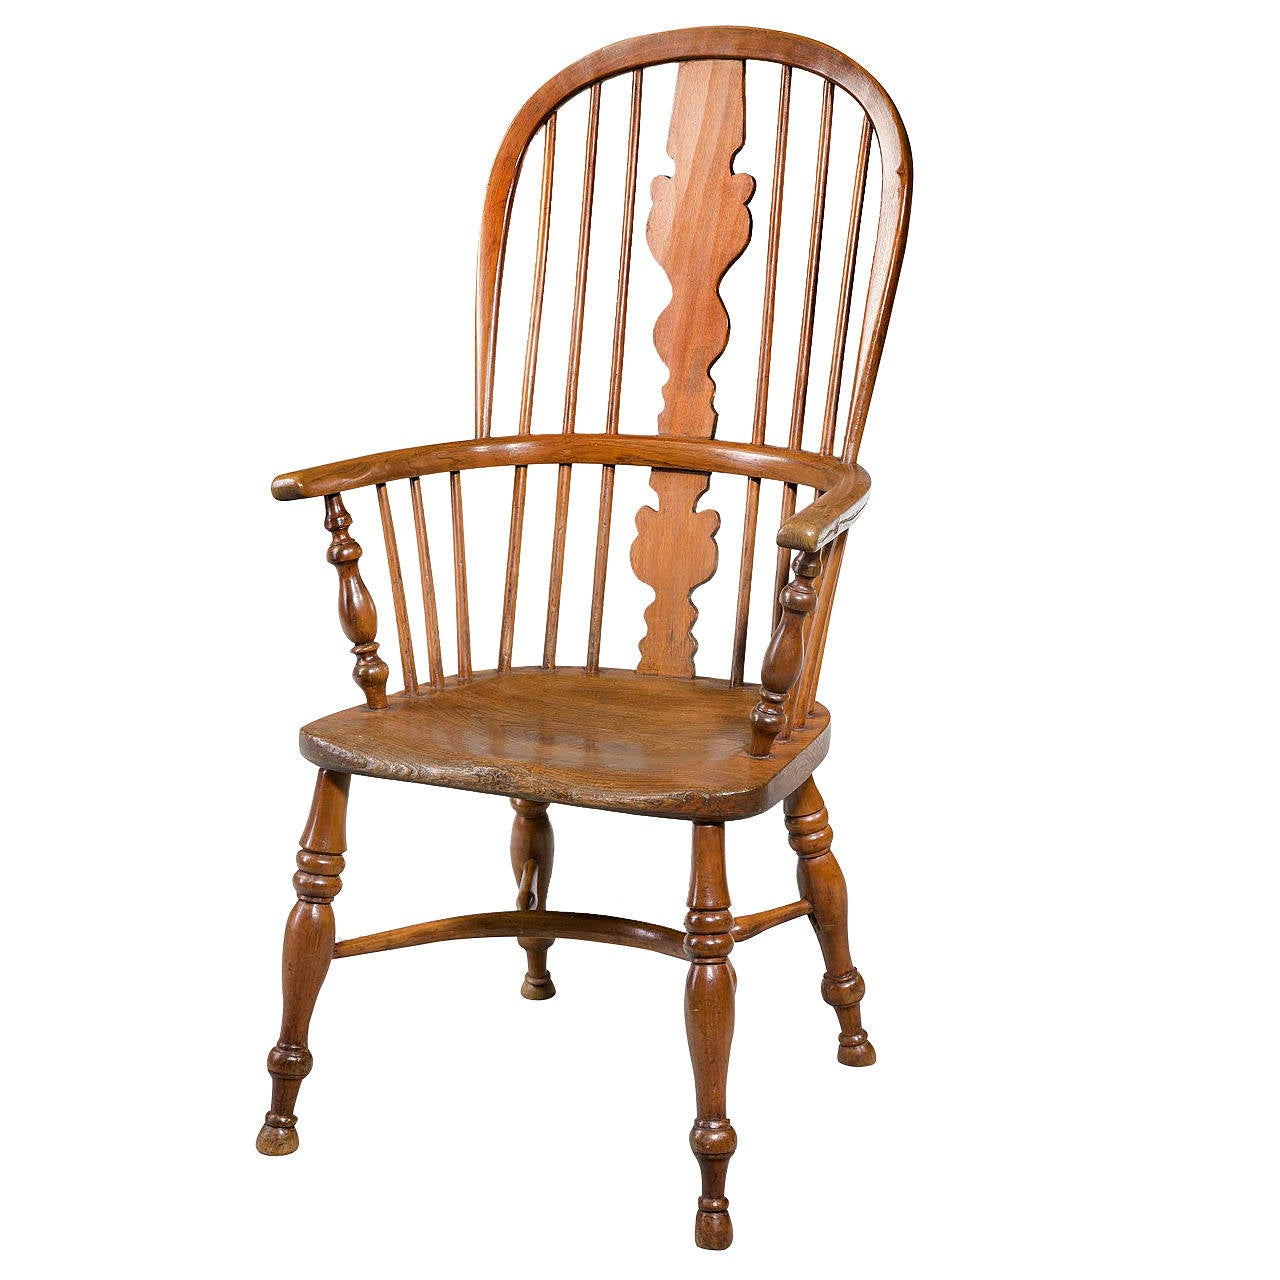 Mid19th Century Elm and Ash High Back Windsor Chair at